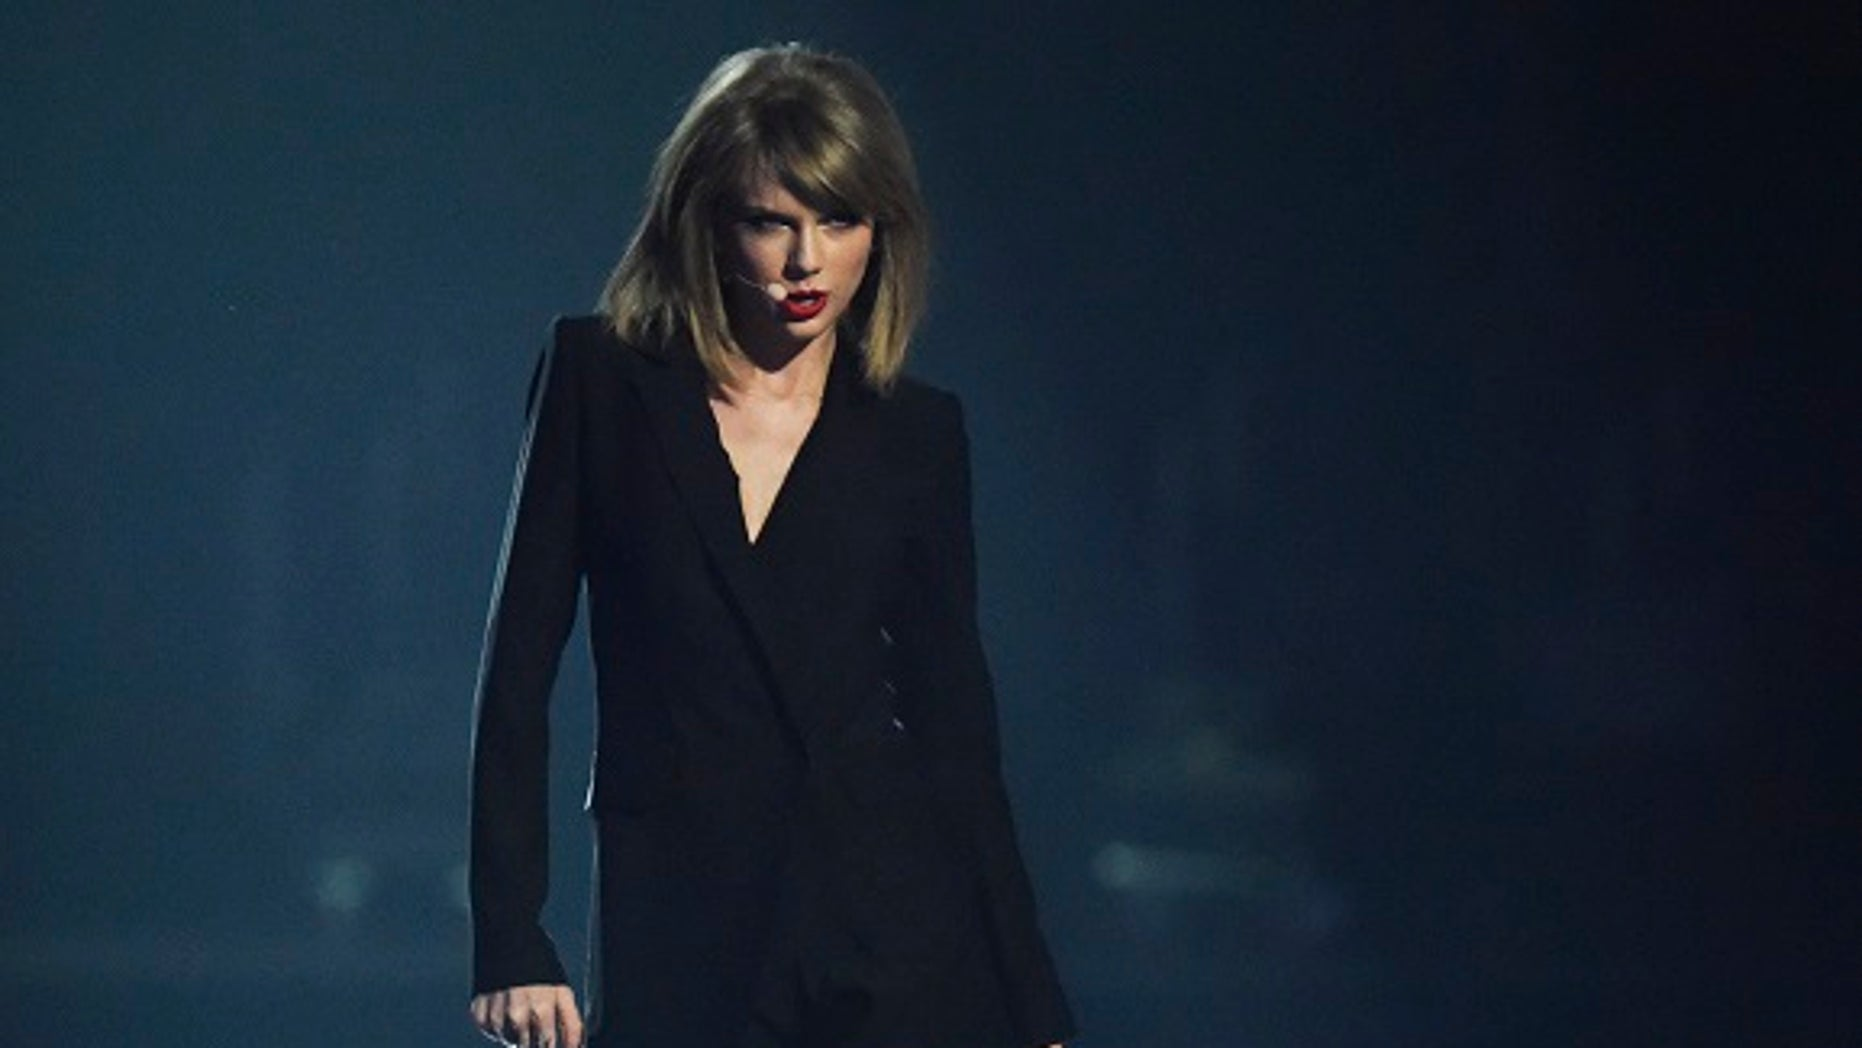 Taylor Swift's fans believe her new music video is a direct dig at her ex-boyfriend Calvin Harris.